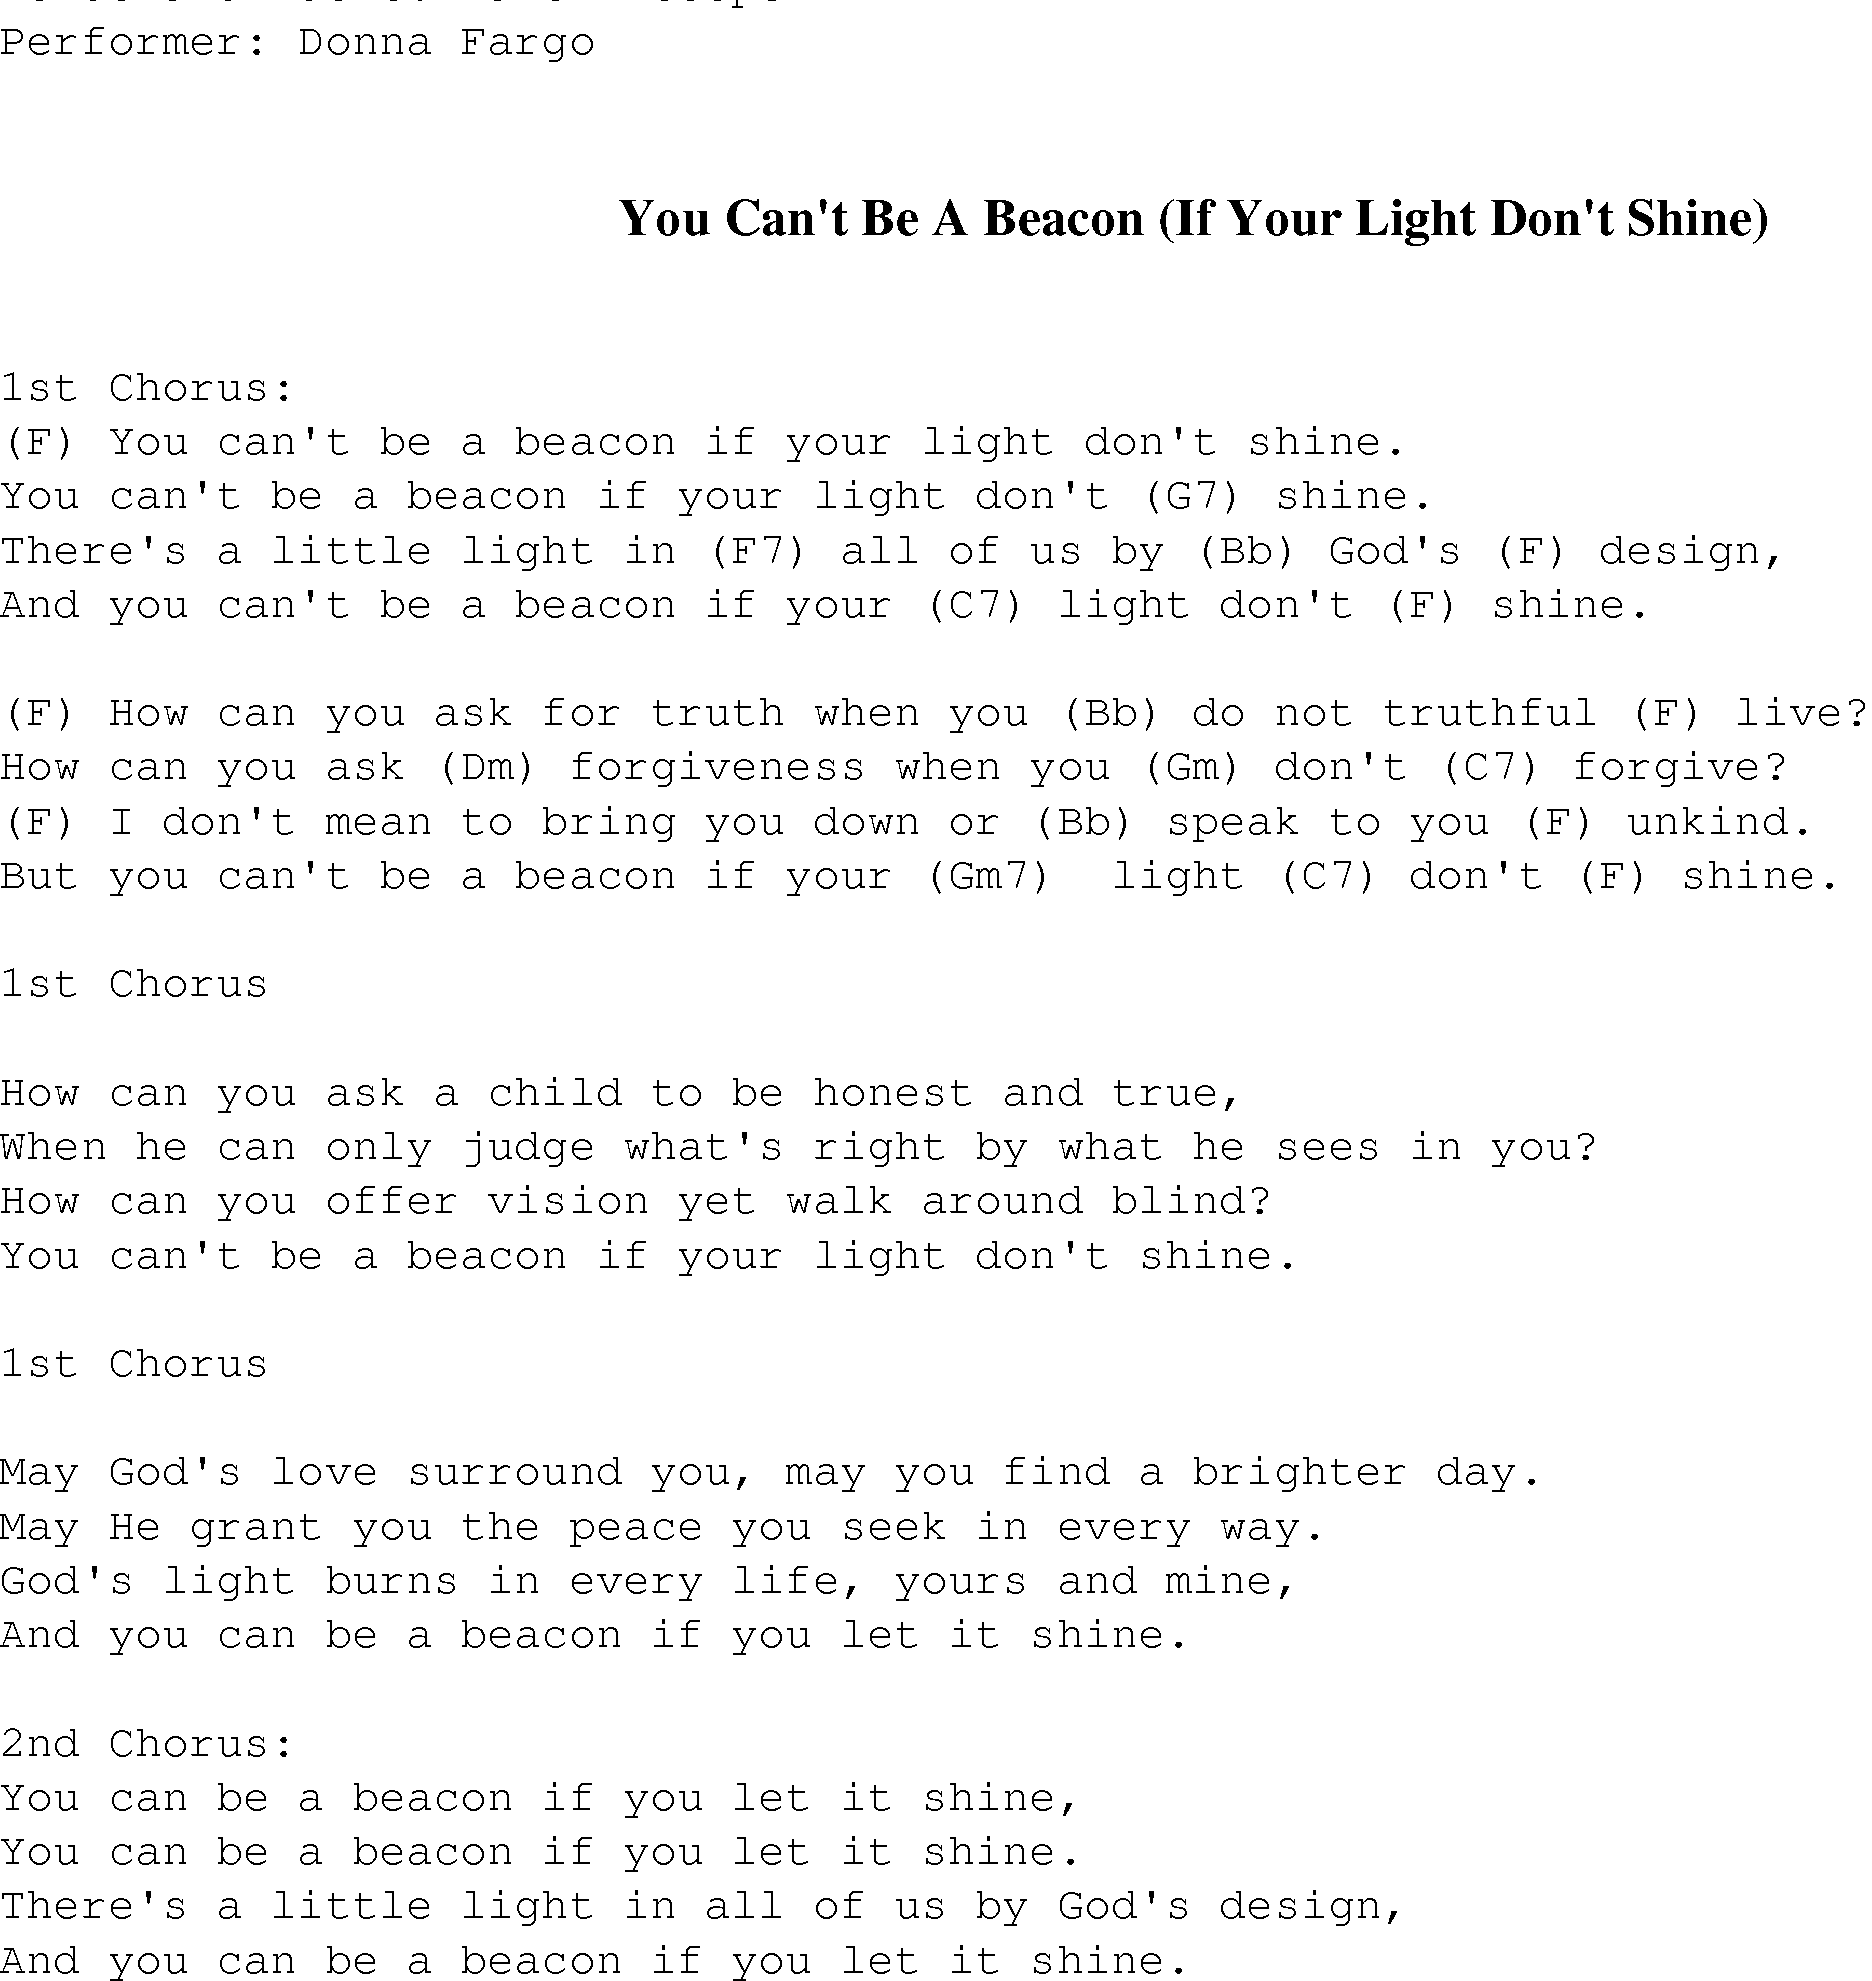 Guitar chords with song lyrics